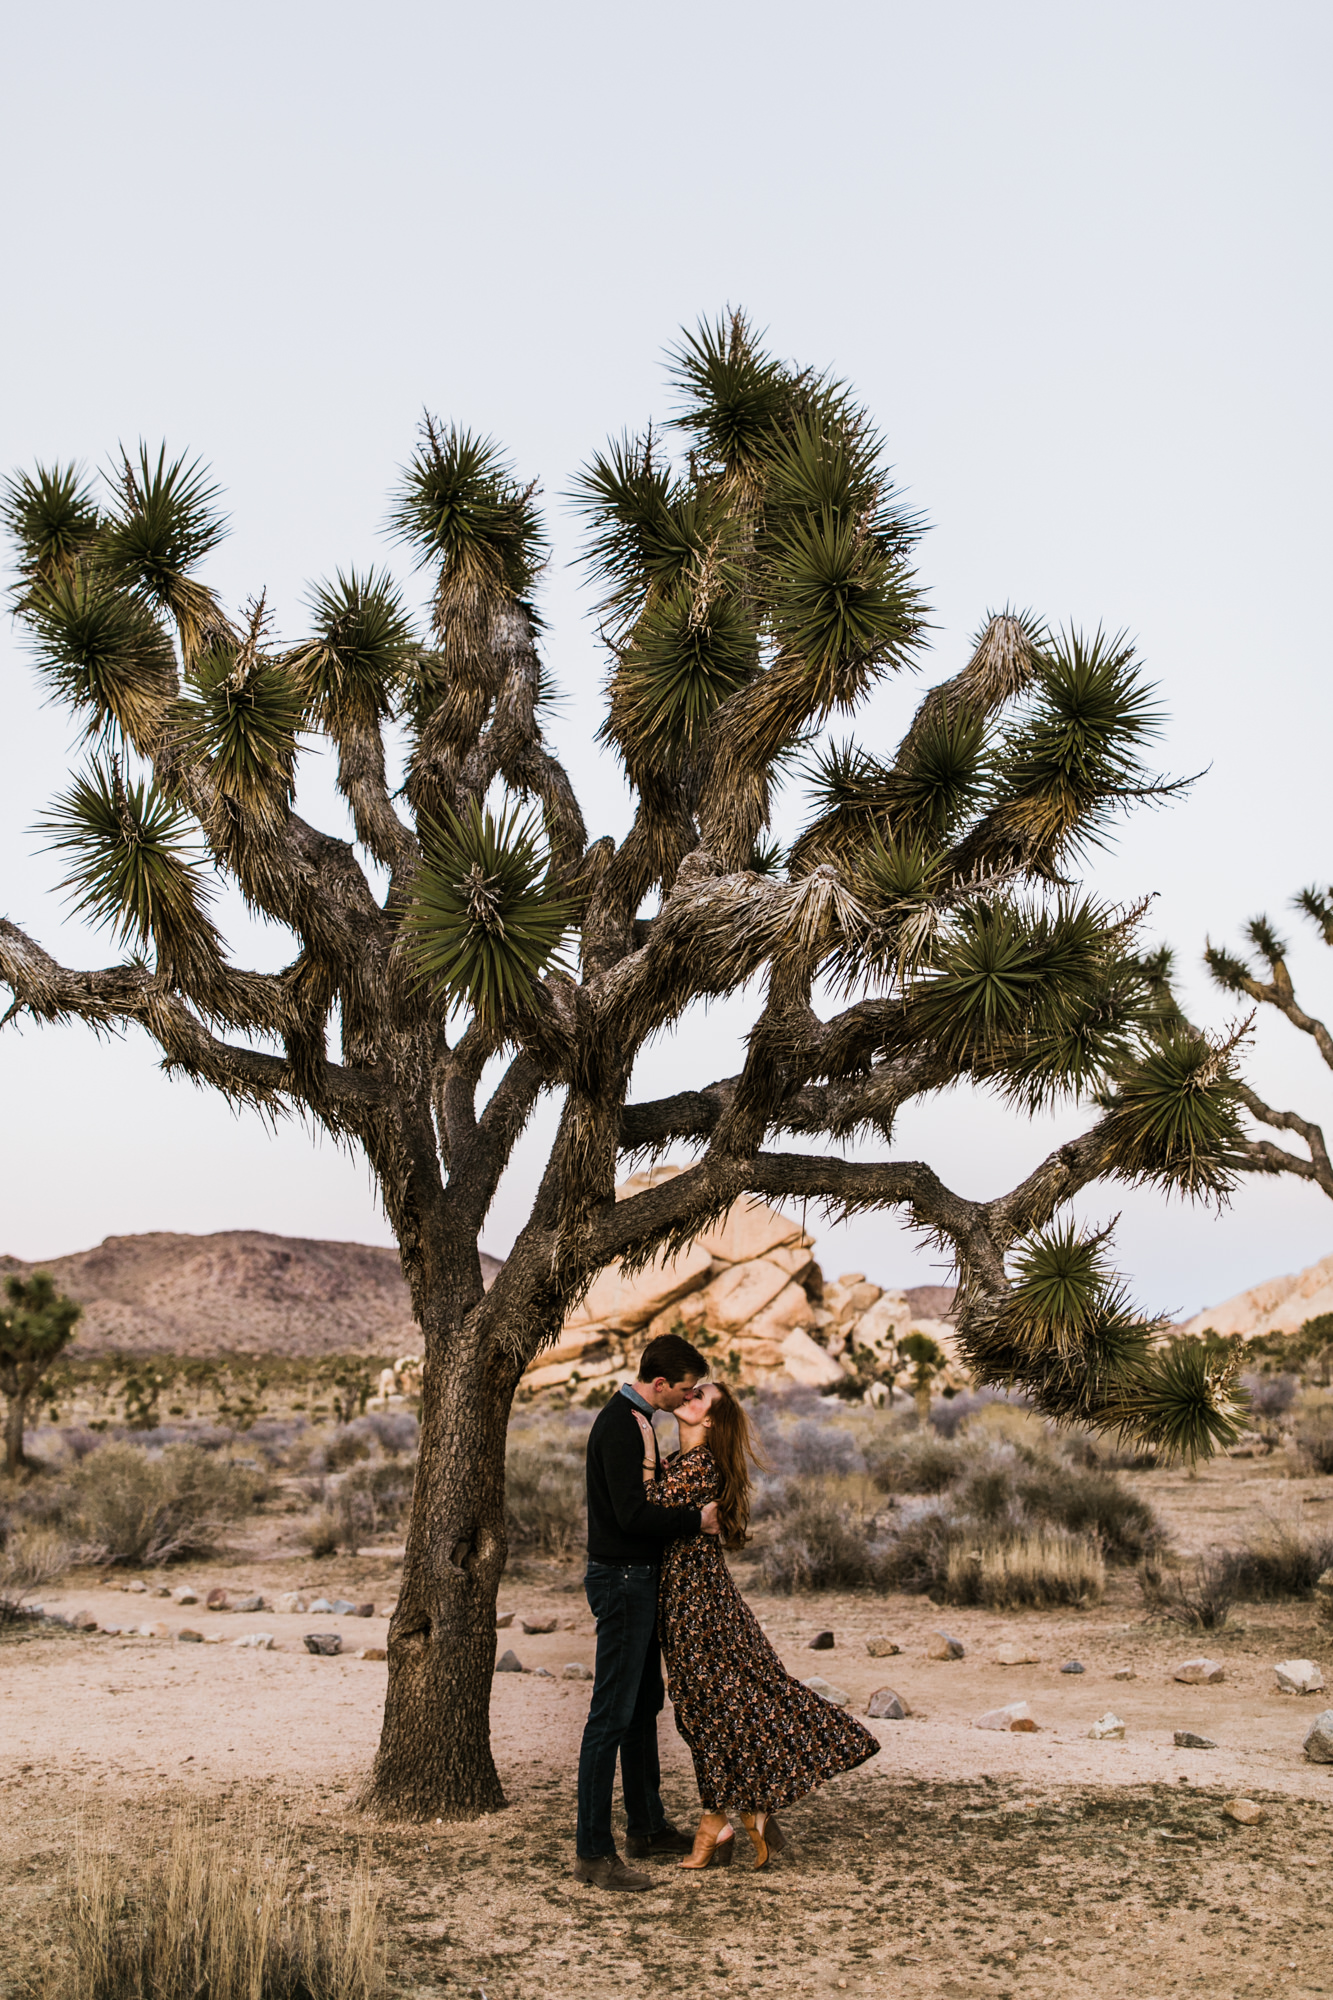 adventurous engagement photos in joshua tree | national park elopement photographer | the hearnes adventure photography | www.thehearnes.com